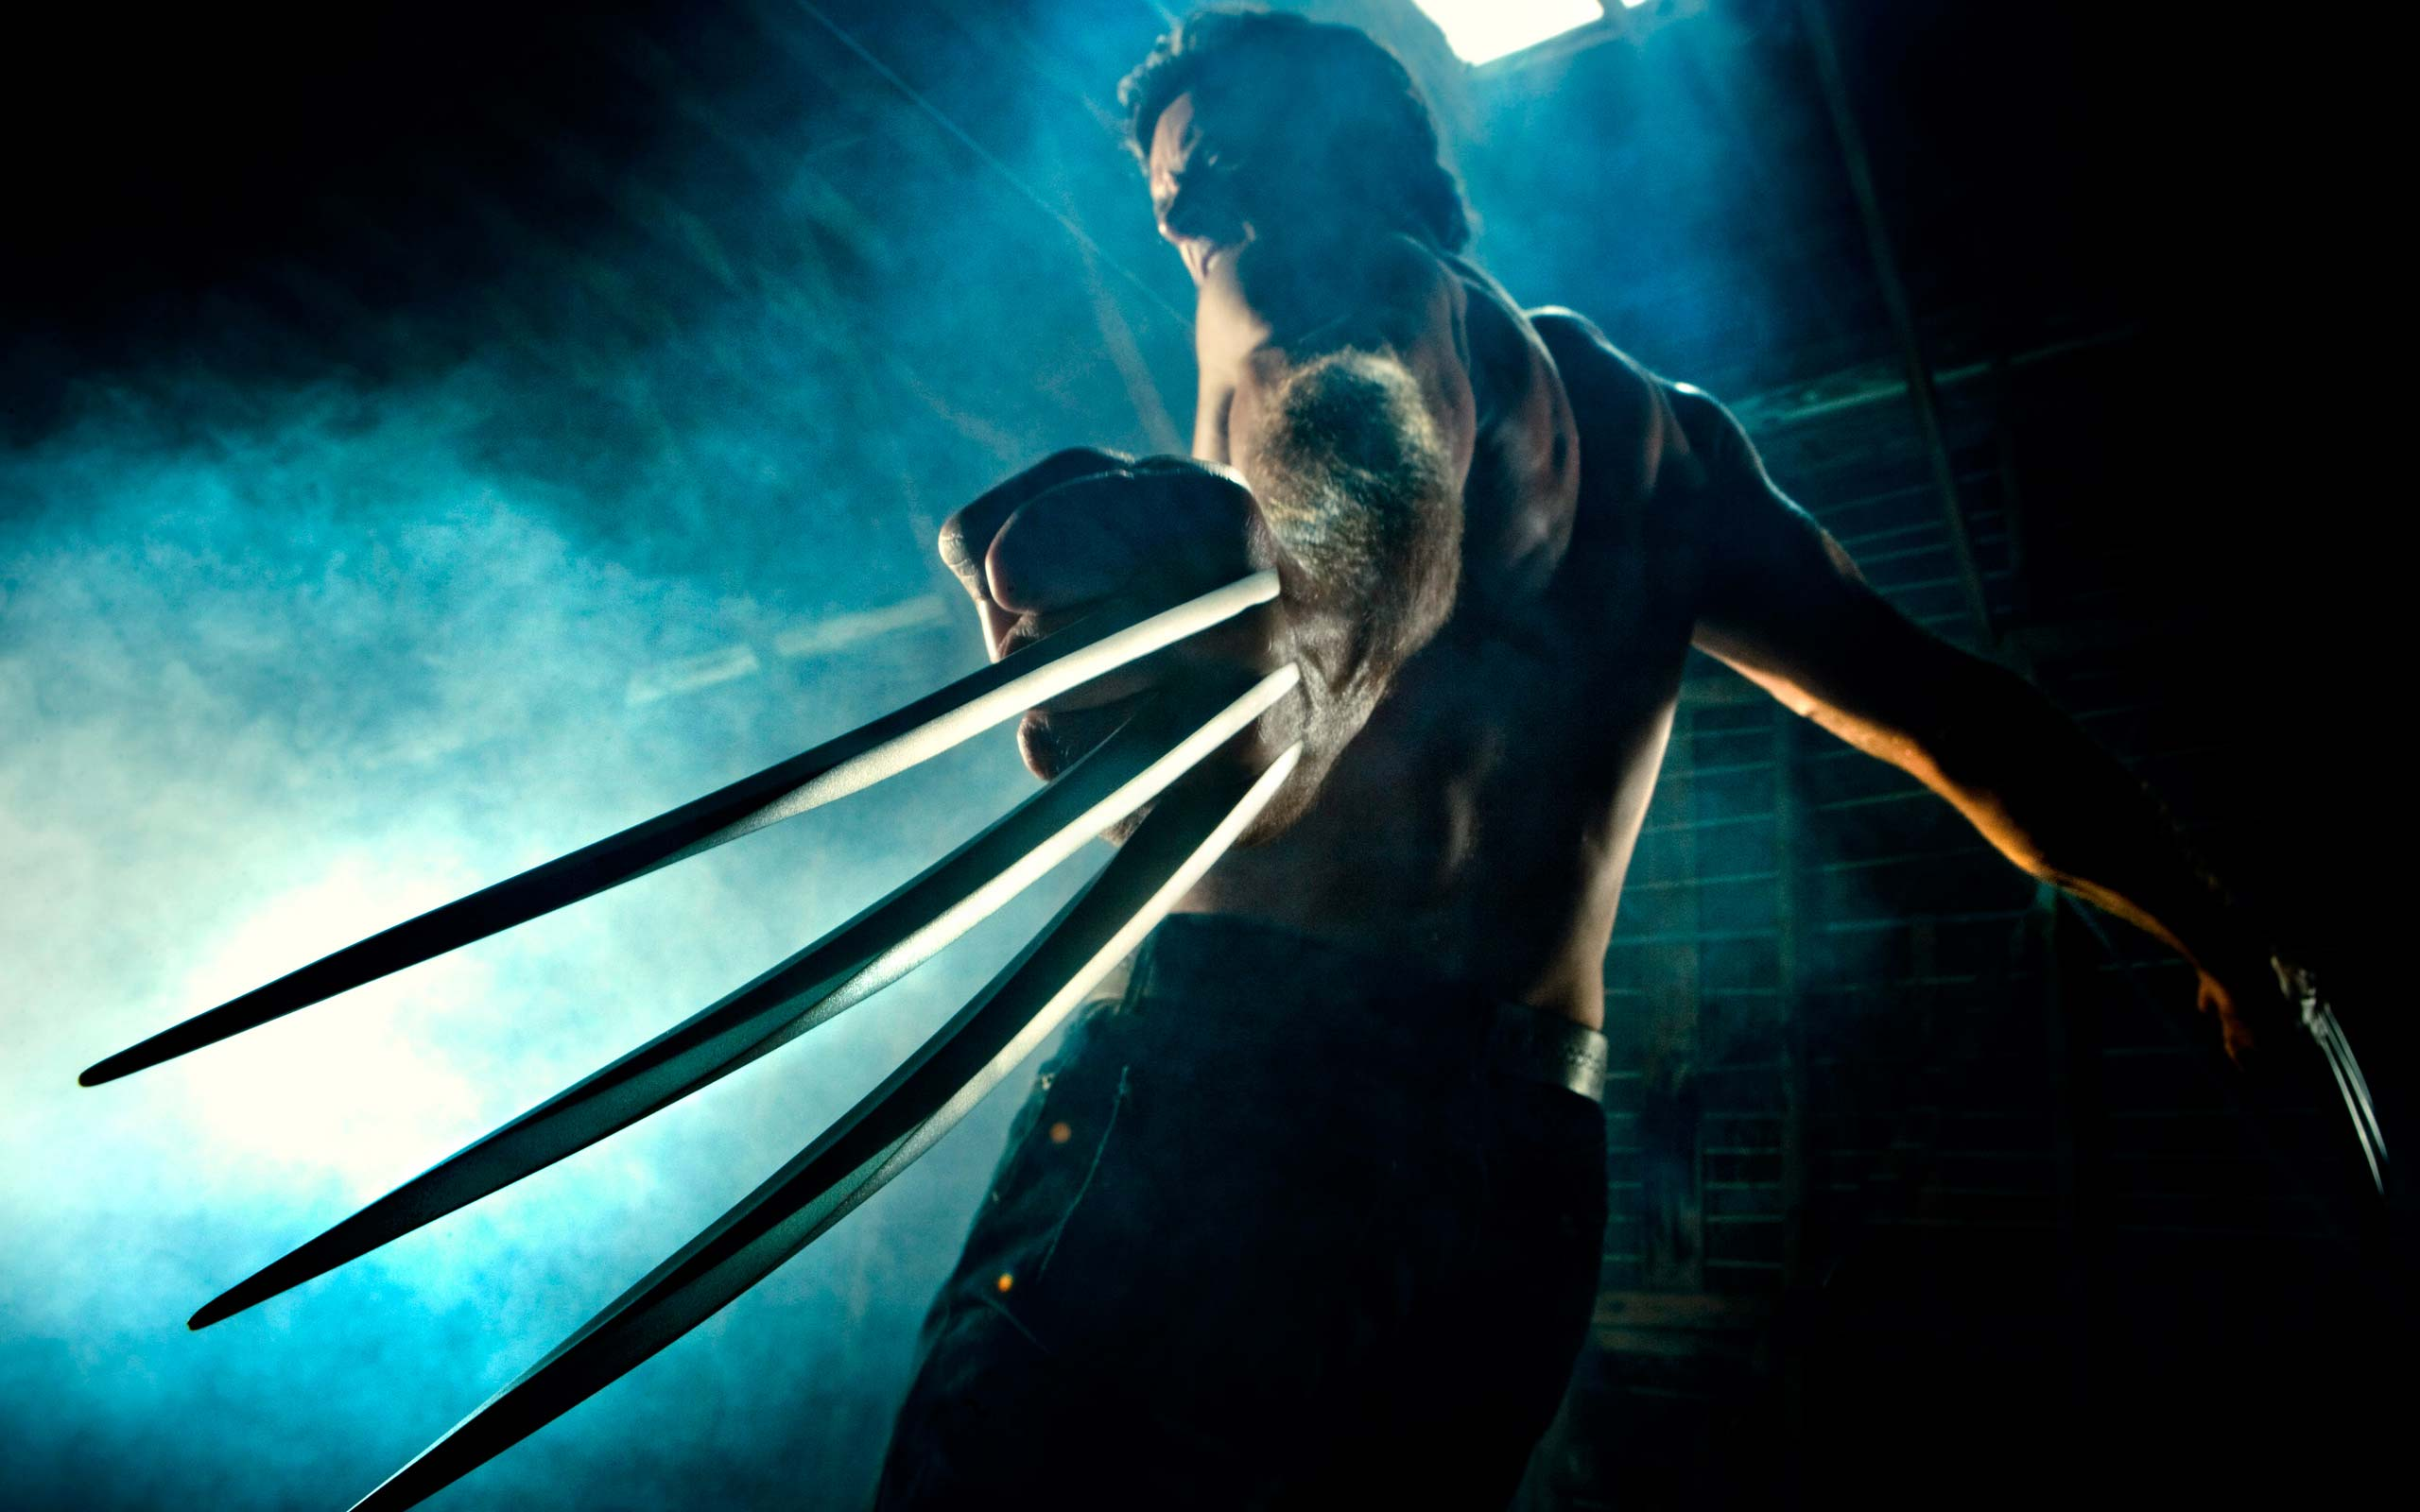 Hugh Jackman X Men Wolverine Wallpapers HD Collection 2560x1600